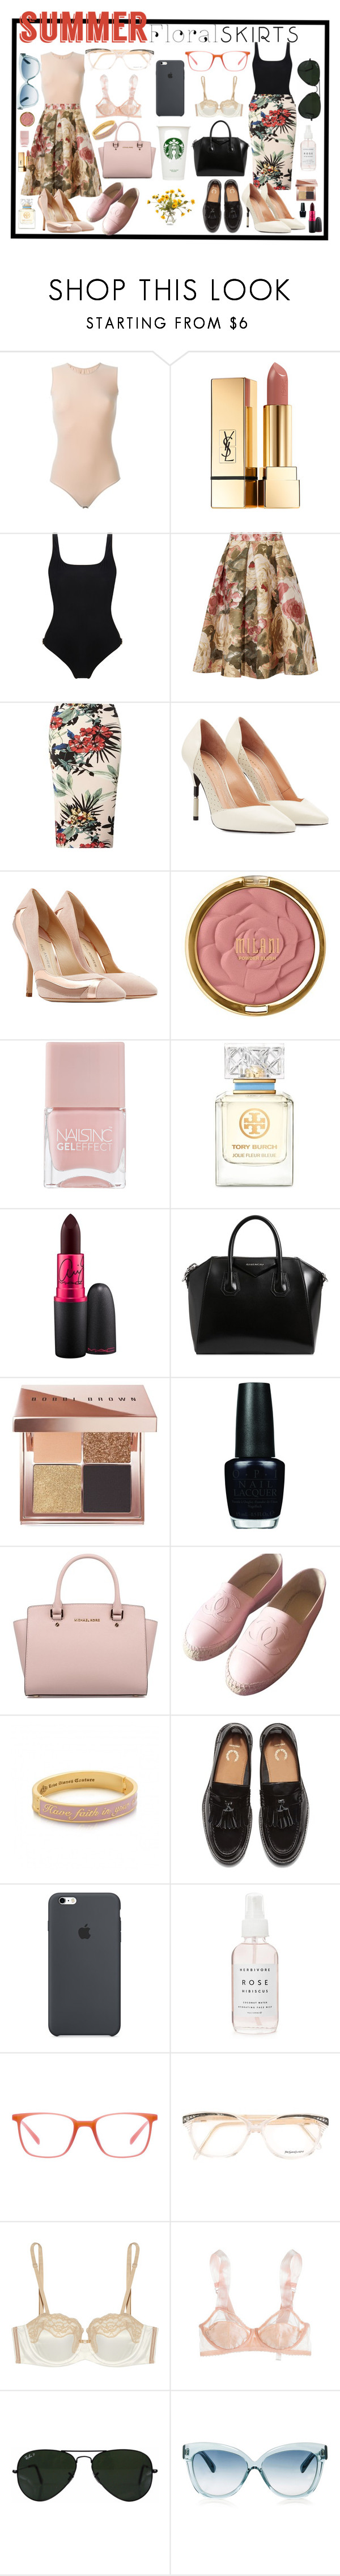 """""""Choices"""" by draysudz ❤ liked on Polyvore featuring Maison Margiela, Yves Saint Laurent, Orlebar Brown, Dorothy Perkins, Roland Mouret, Paul Andrew, Milani, Nails Inc., Tory Burch and MAC Cosmetics"""